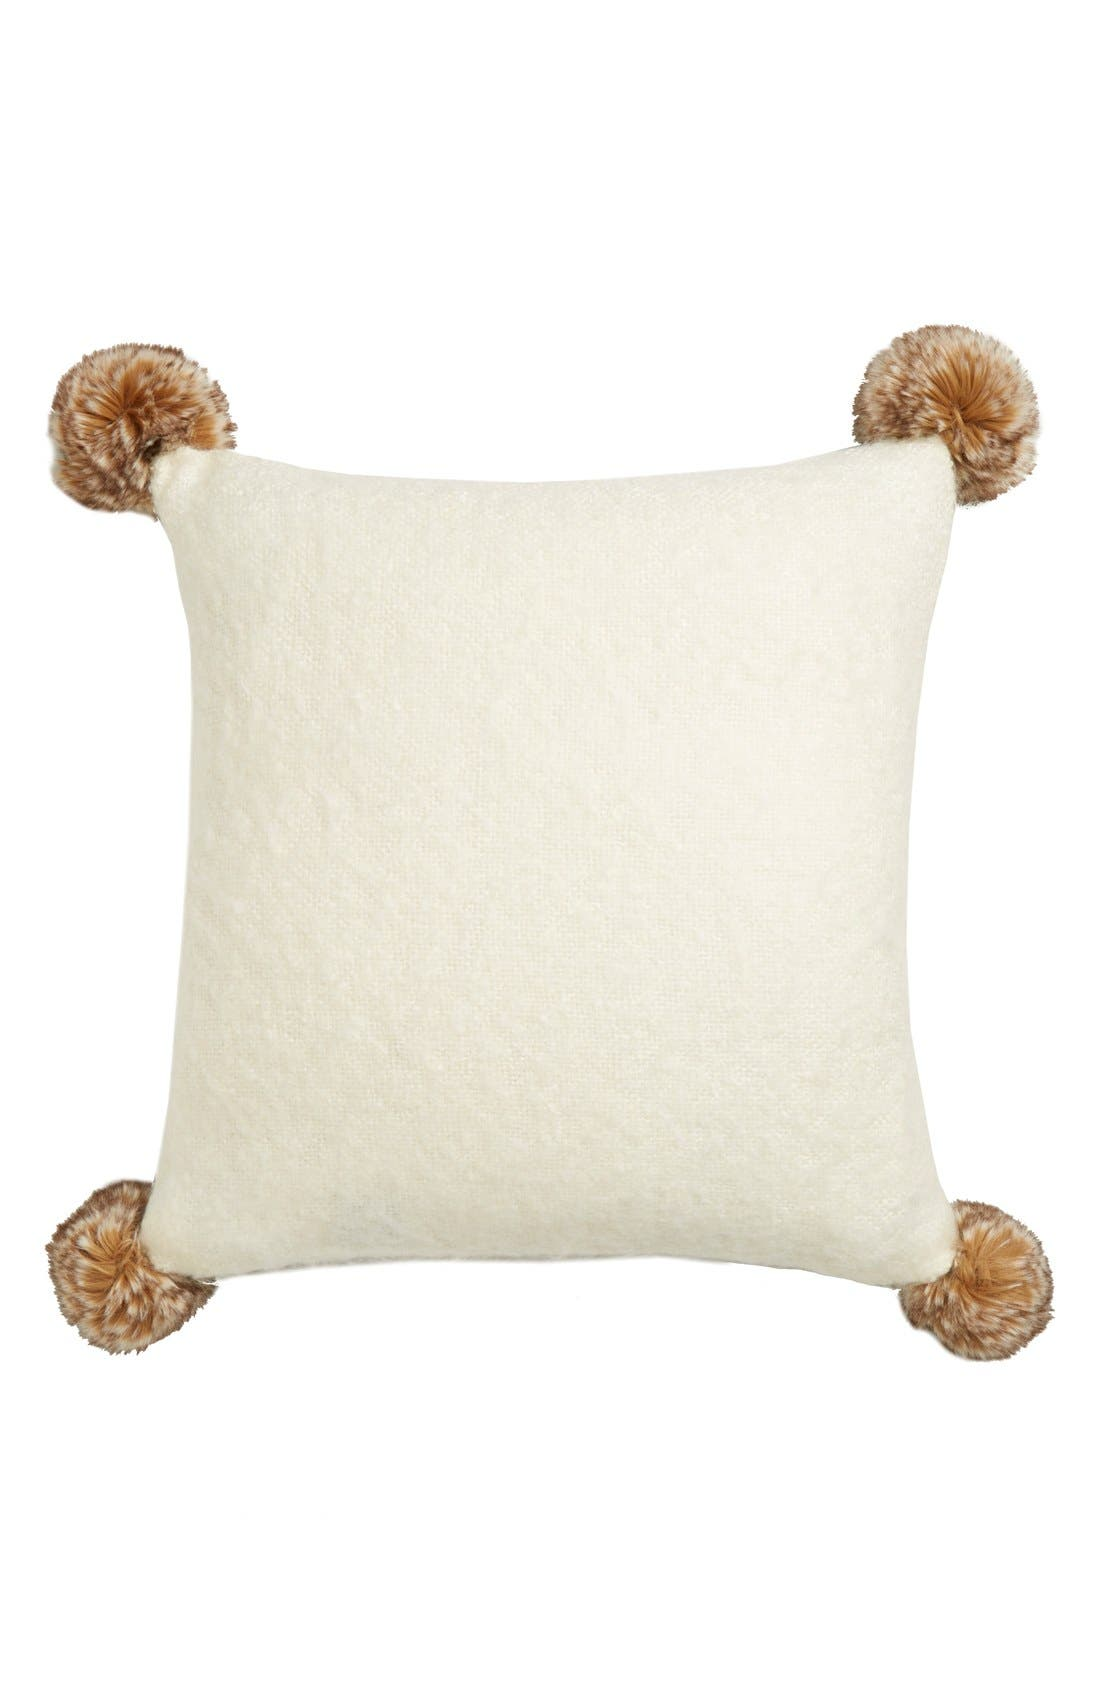 Brushed Accent Pillow with Pompoms,                         Main,                         color,